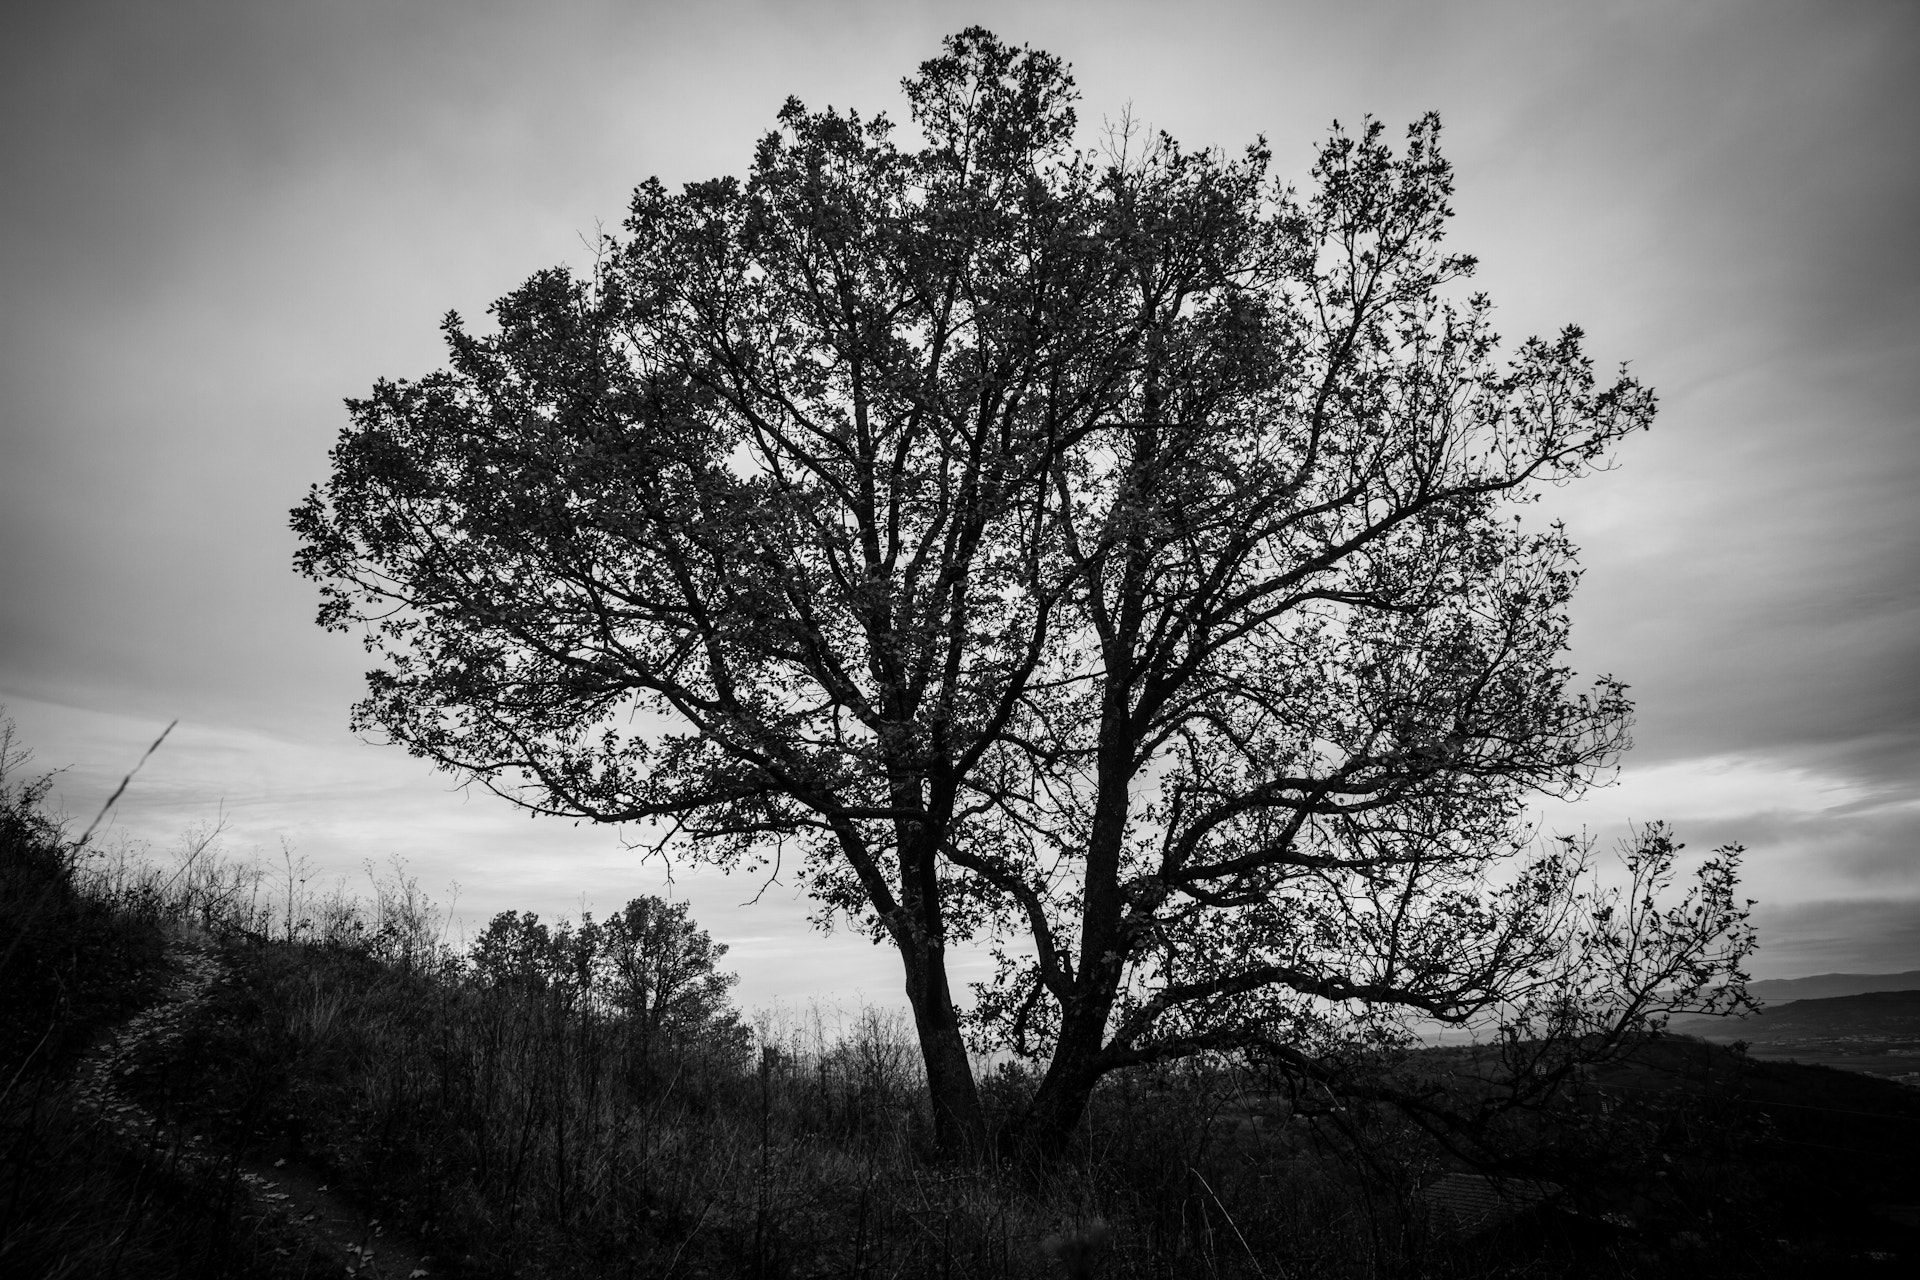 Photograph L'arbre by Philippe Jacquetin on 500px